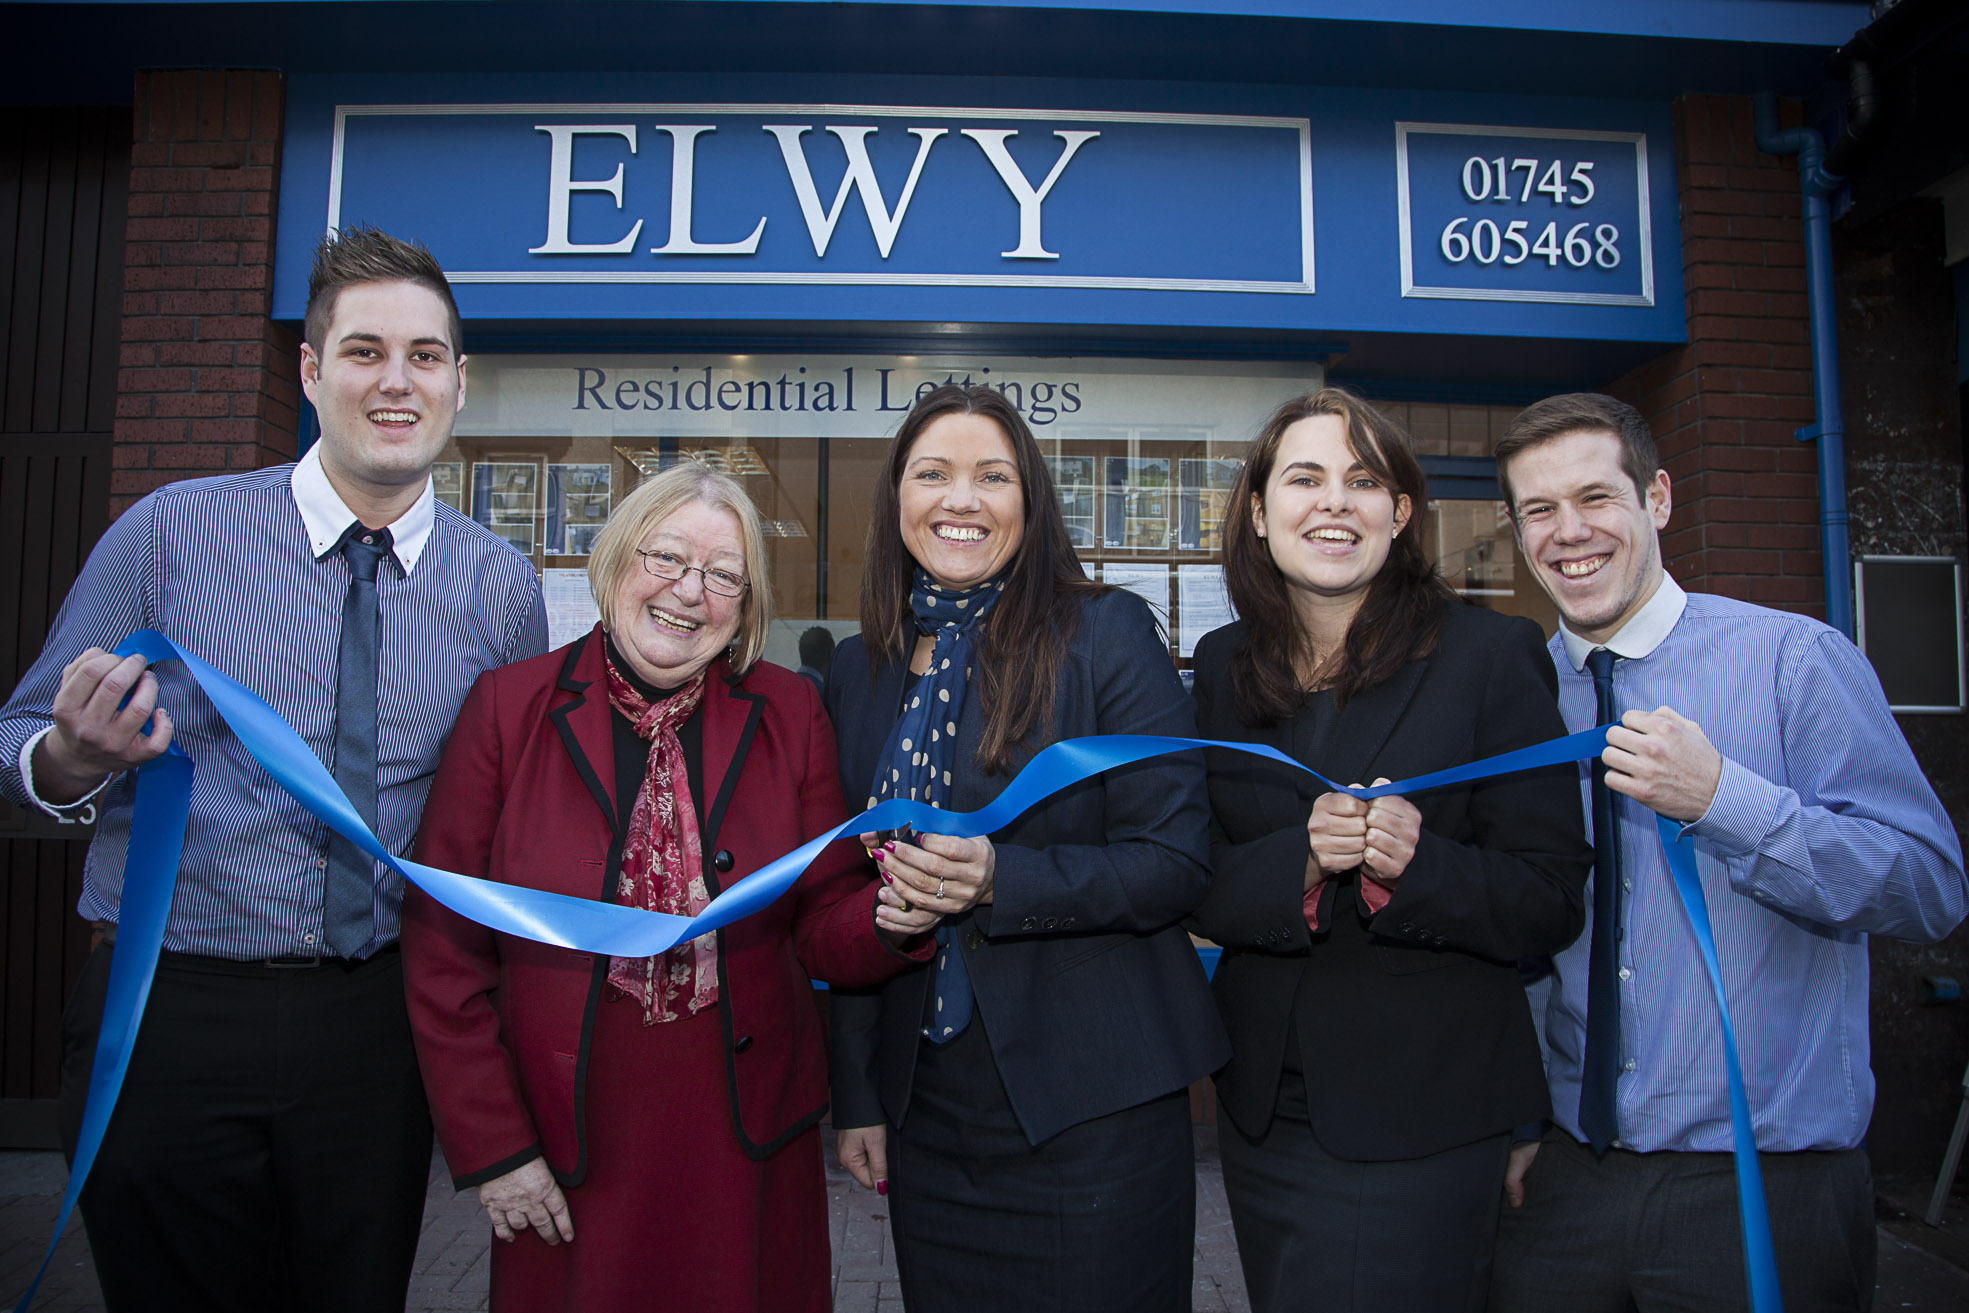 New jobs for Rhyl as lettings firm expands in North Wales